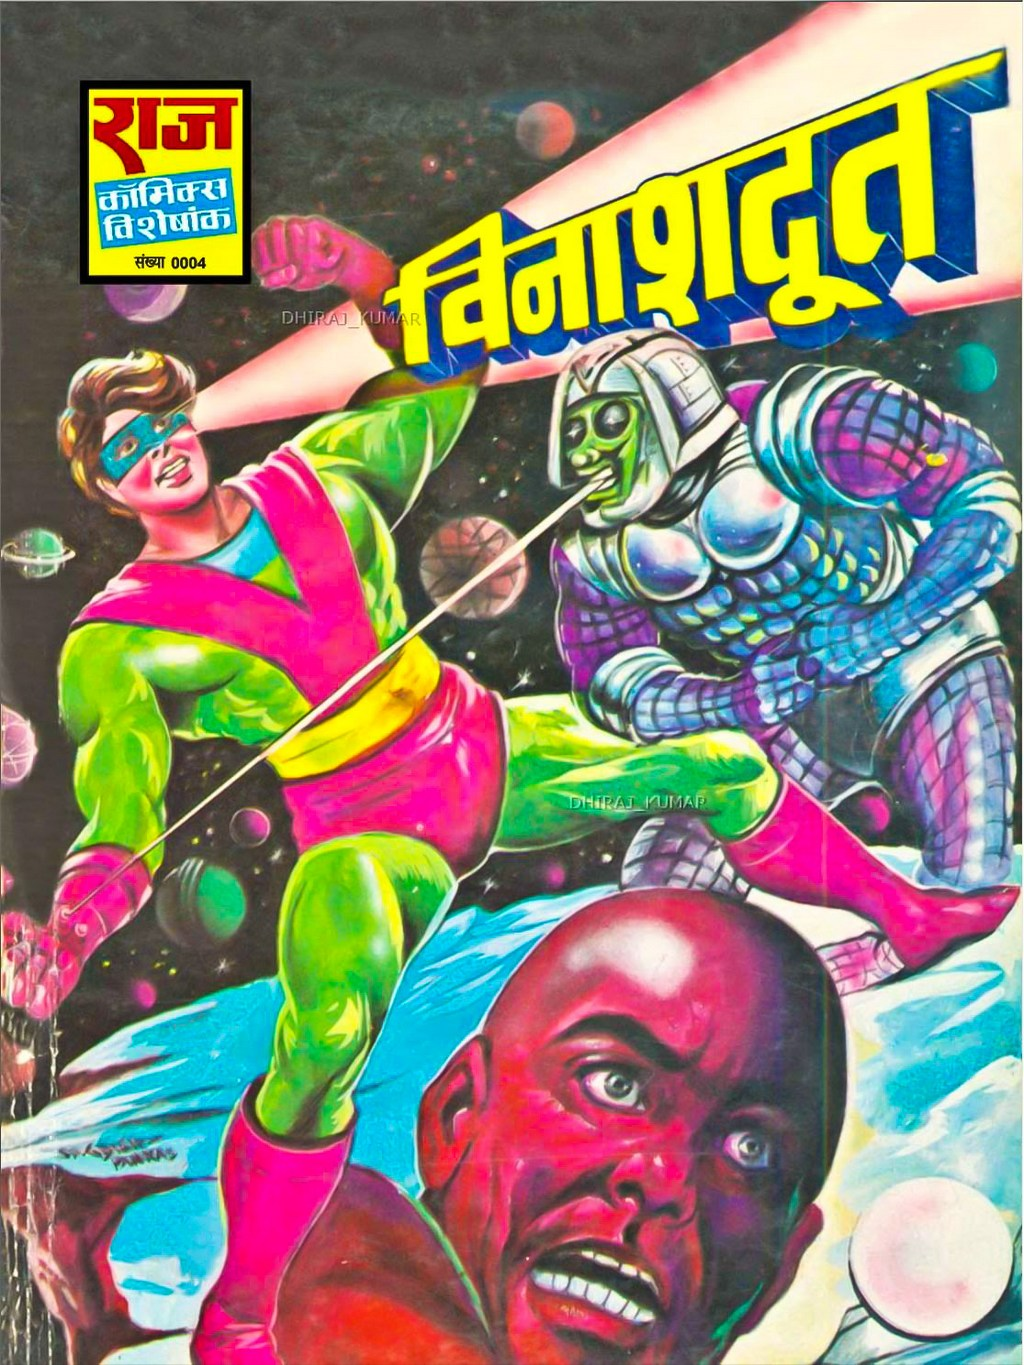 ONLY-HQ-COMICS: Miscellaneous Raj Comics